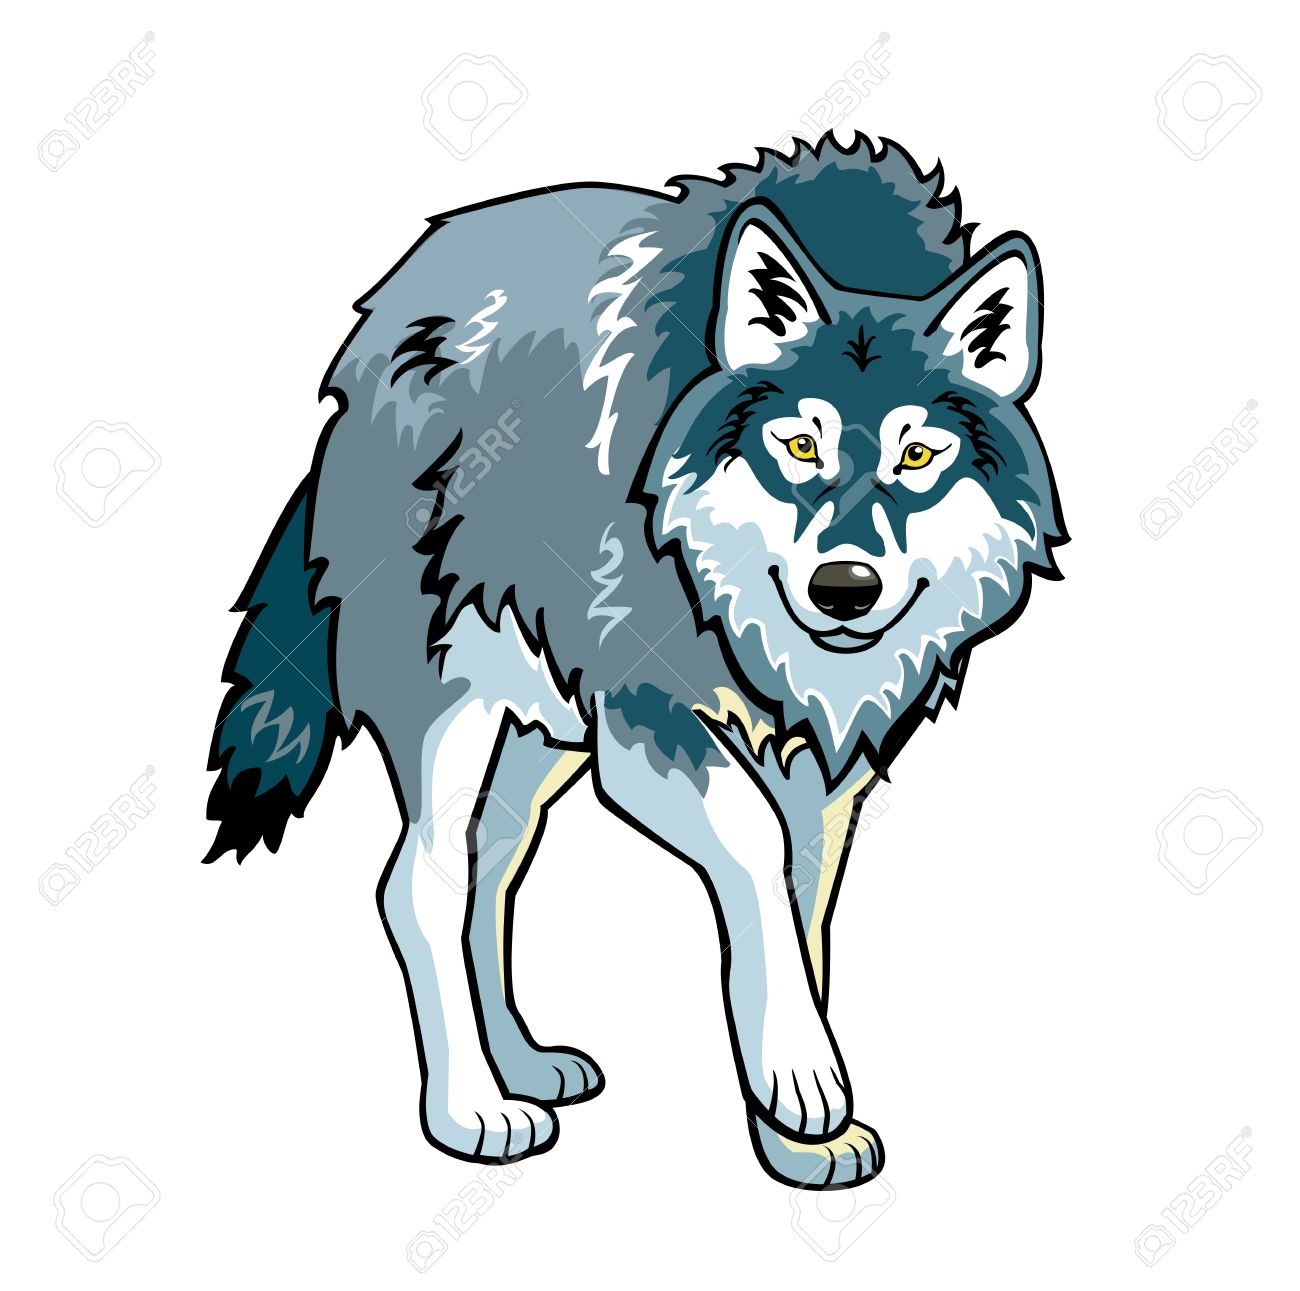 Wolf clipart #10, Download drawings